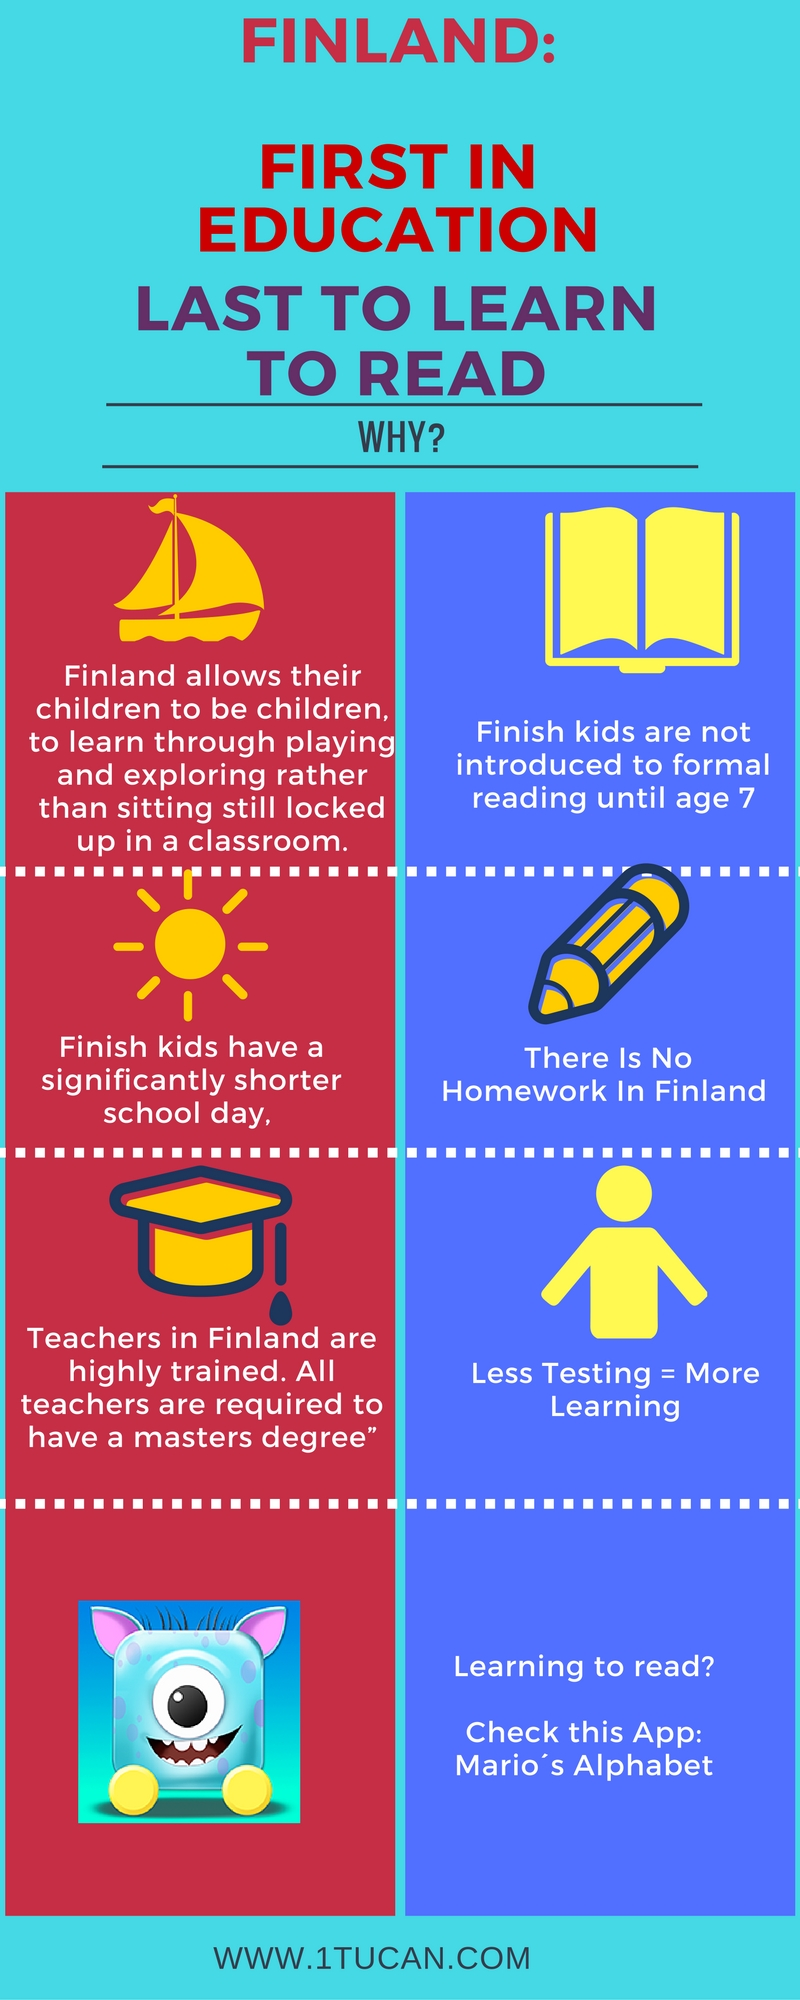 education in finland New trends in higher education reforming higher education in the nordic countries – studies of change in denmark, finland, iceland, norway and sweden.